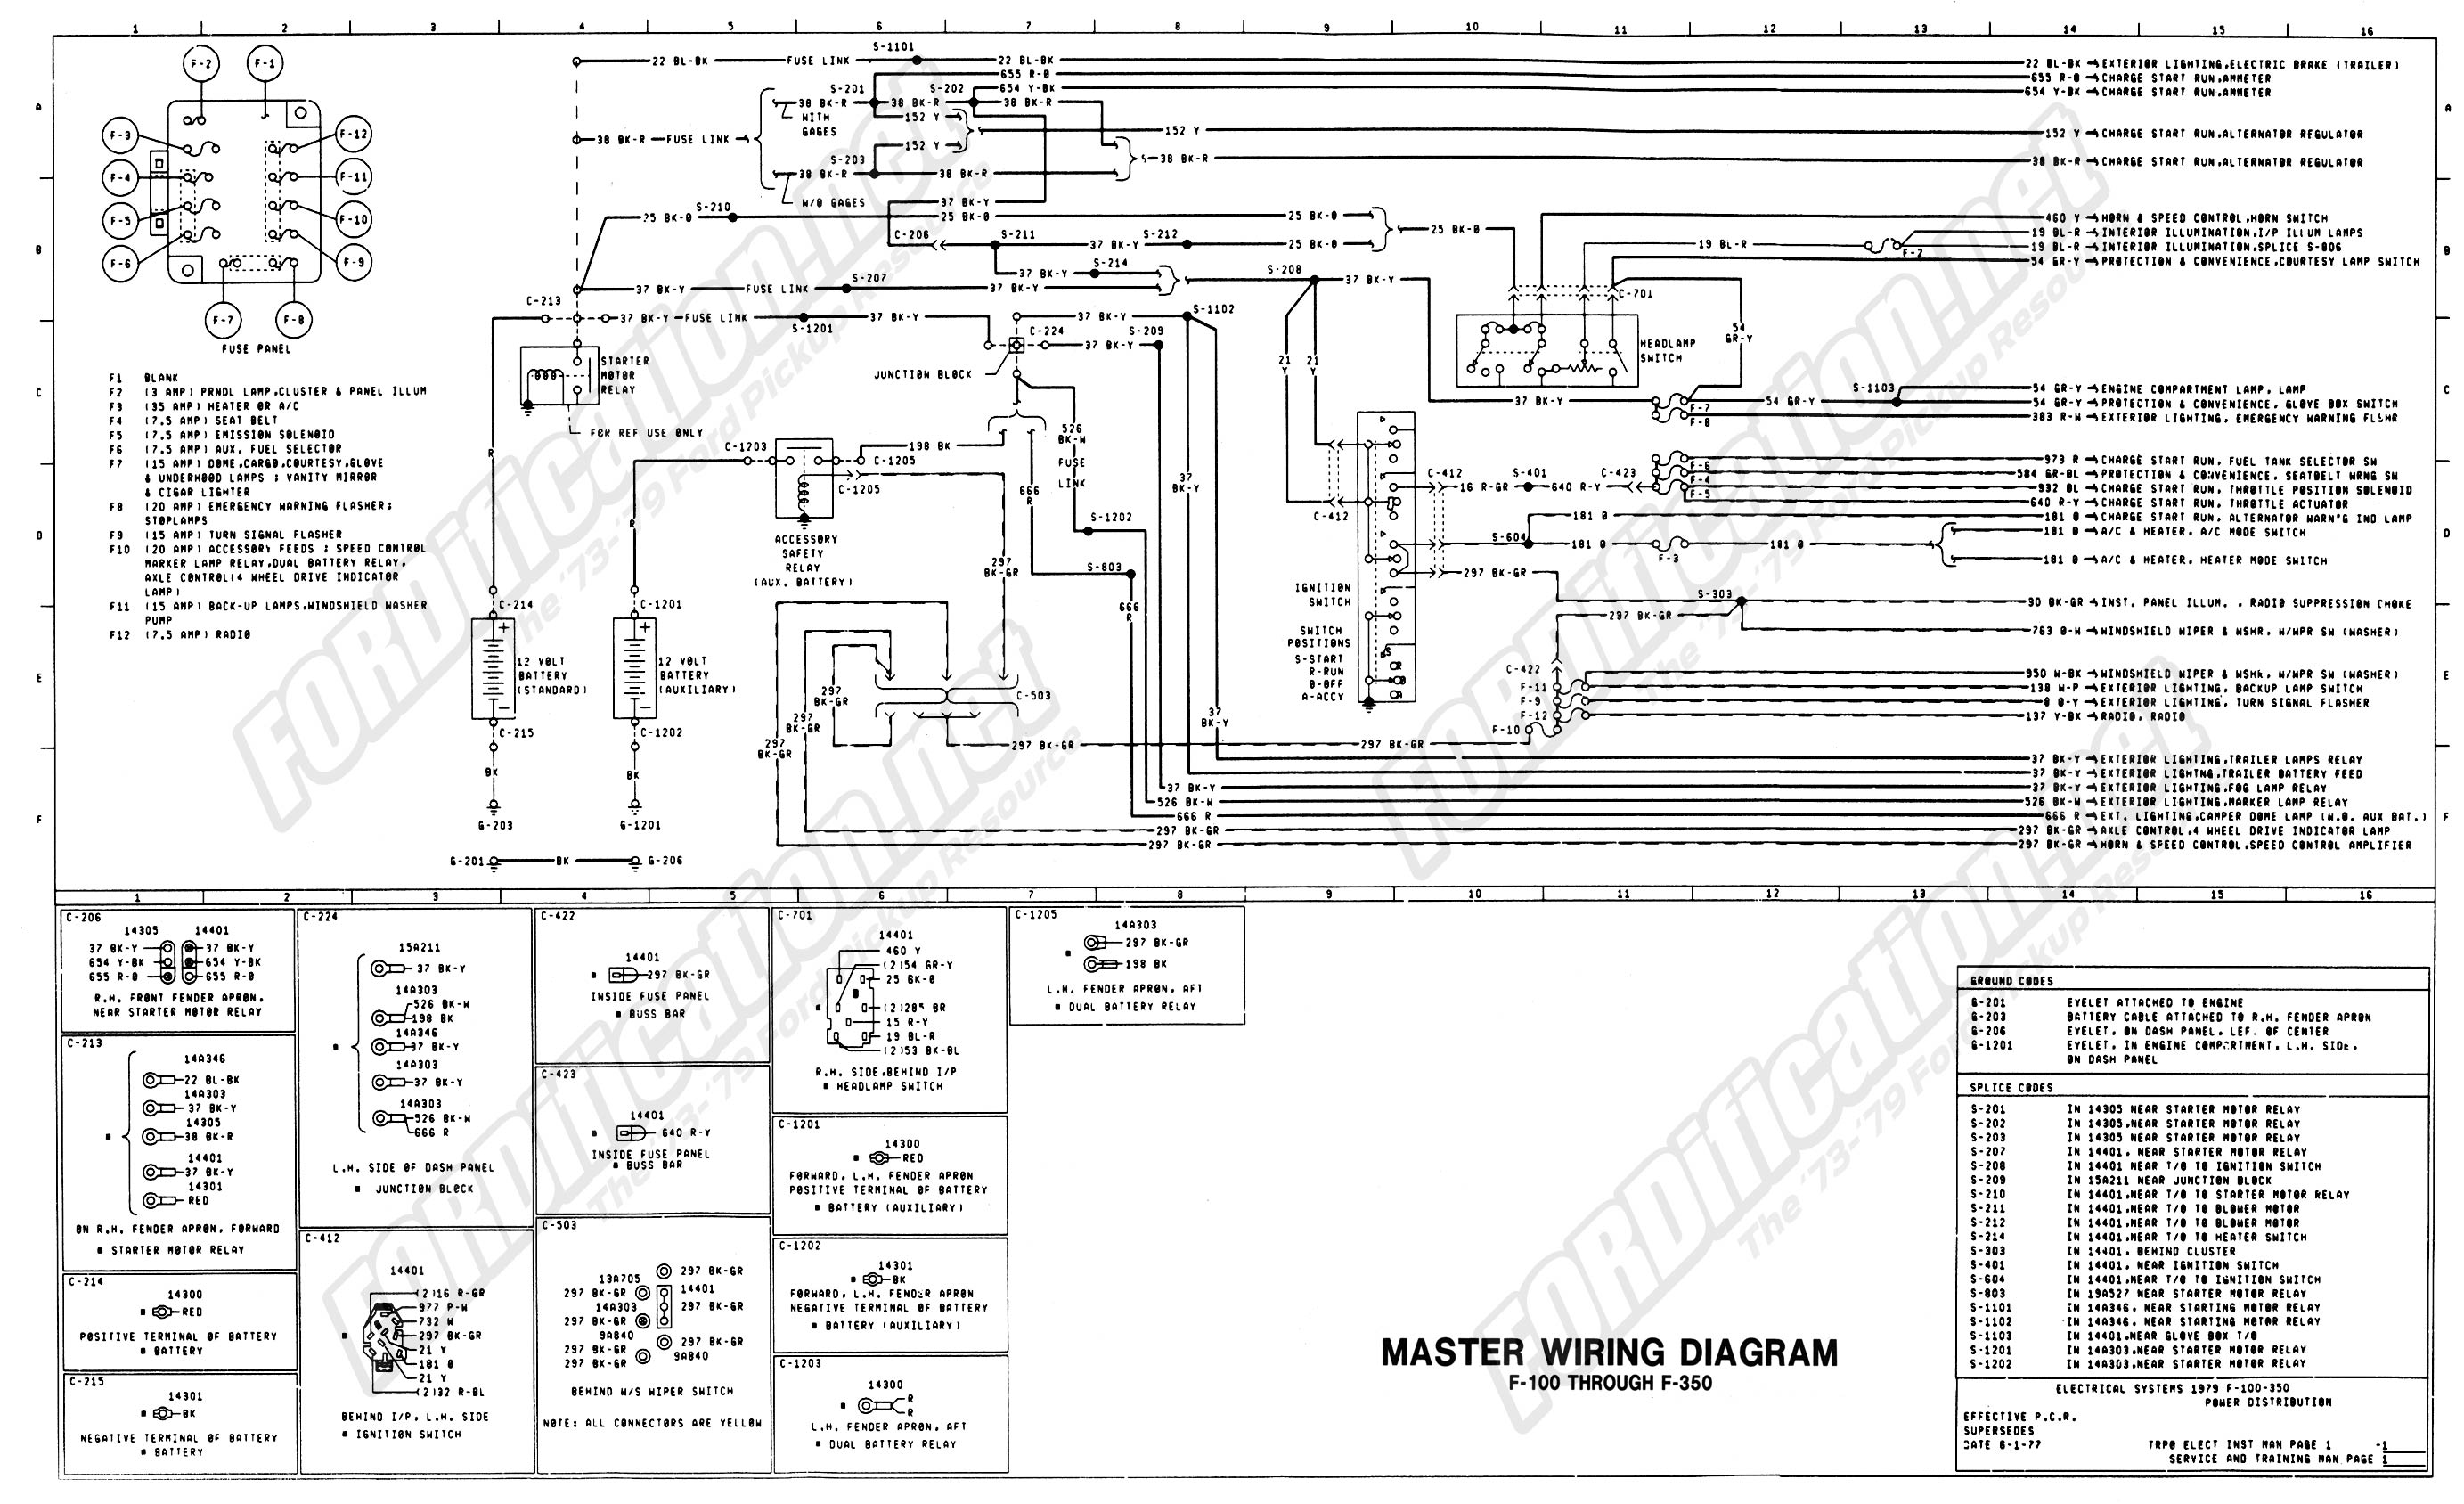 wiring_79master_1of9 1973 1979 ford truck wiring diagrams & schematics fordification net 1979 bronco fuse box diagram at bakdesigns.co